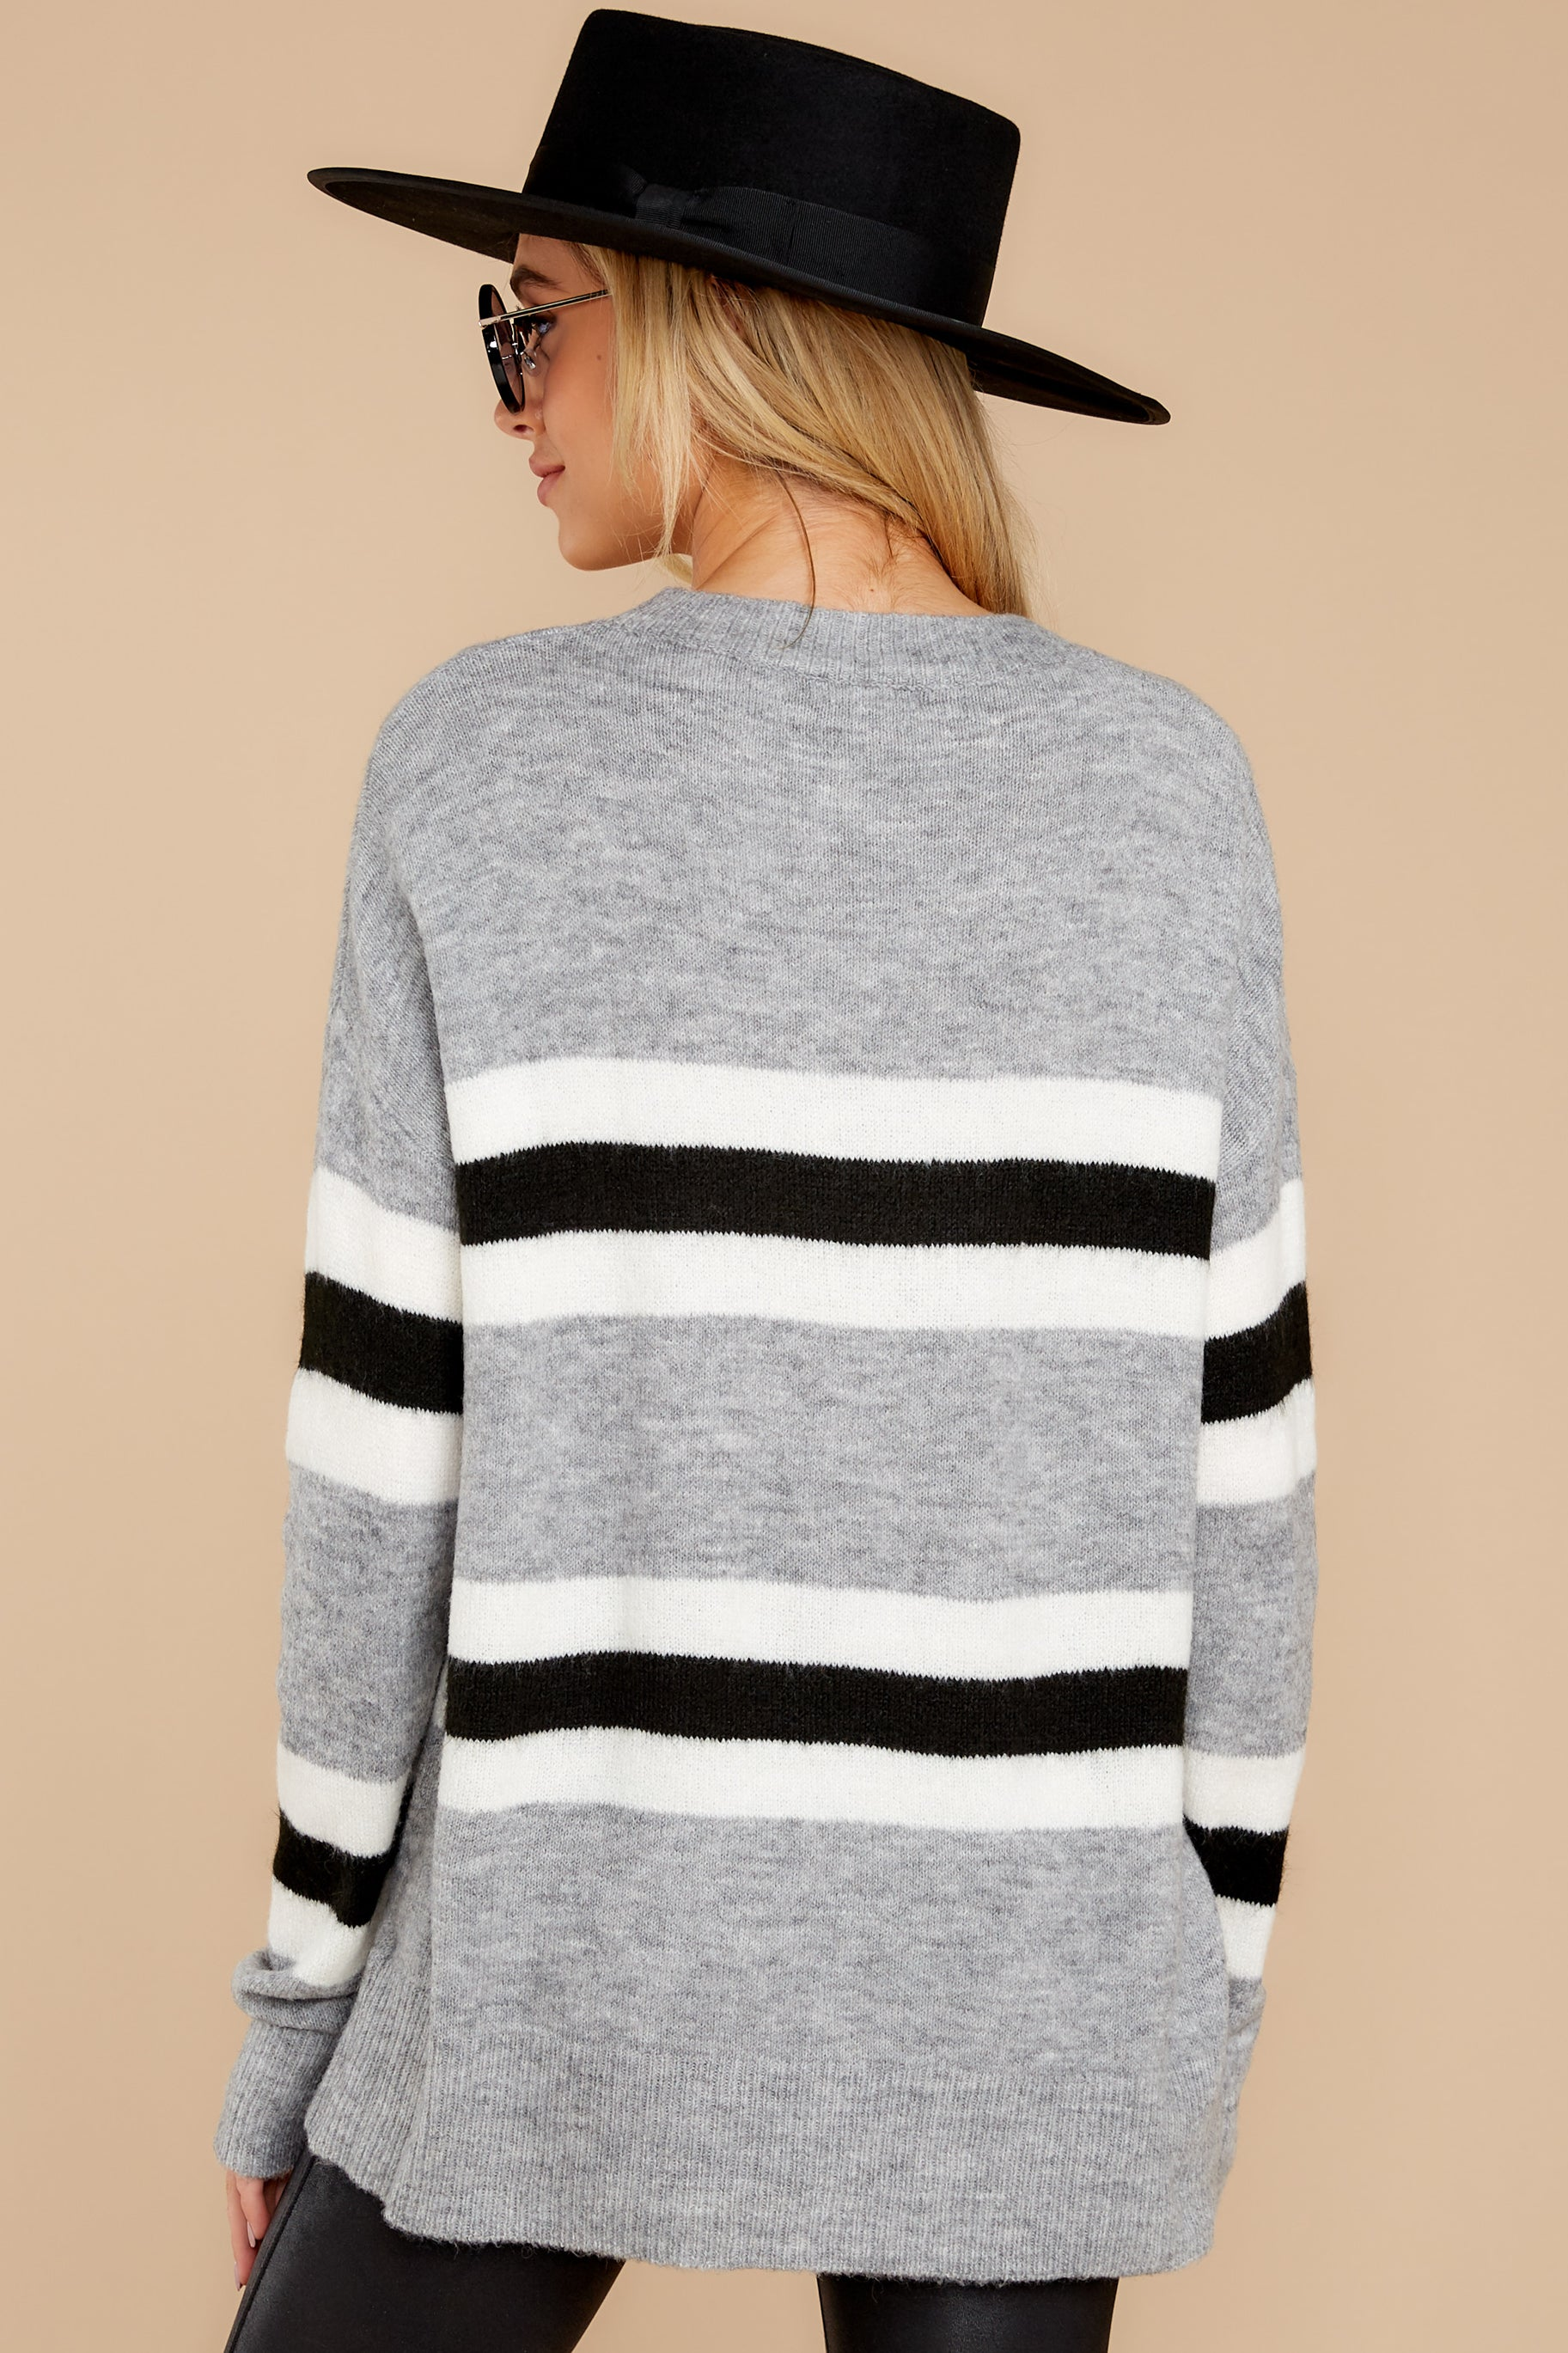 9 On The Line Grey Multi Stripe Sweater at reddressboutique.com